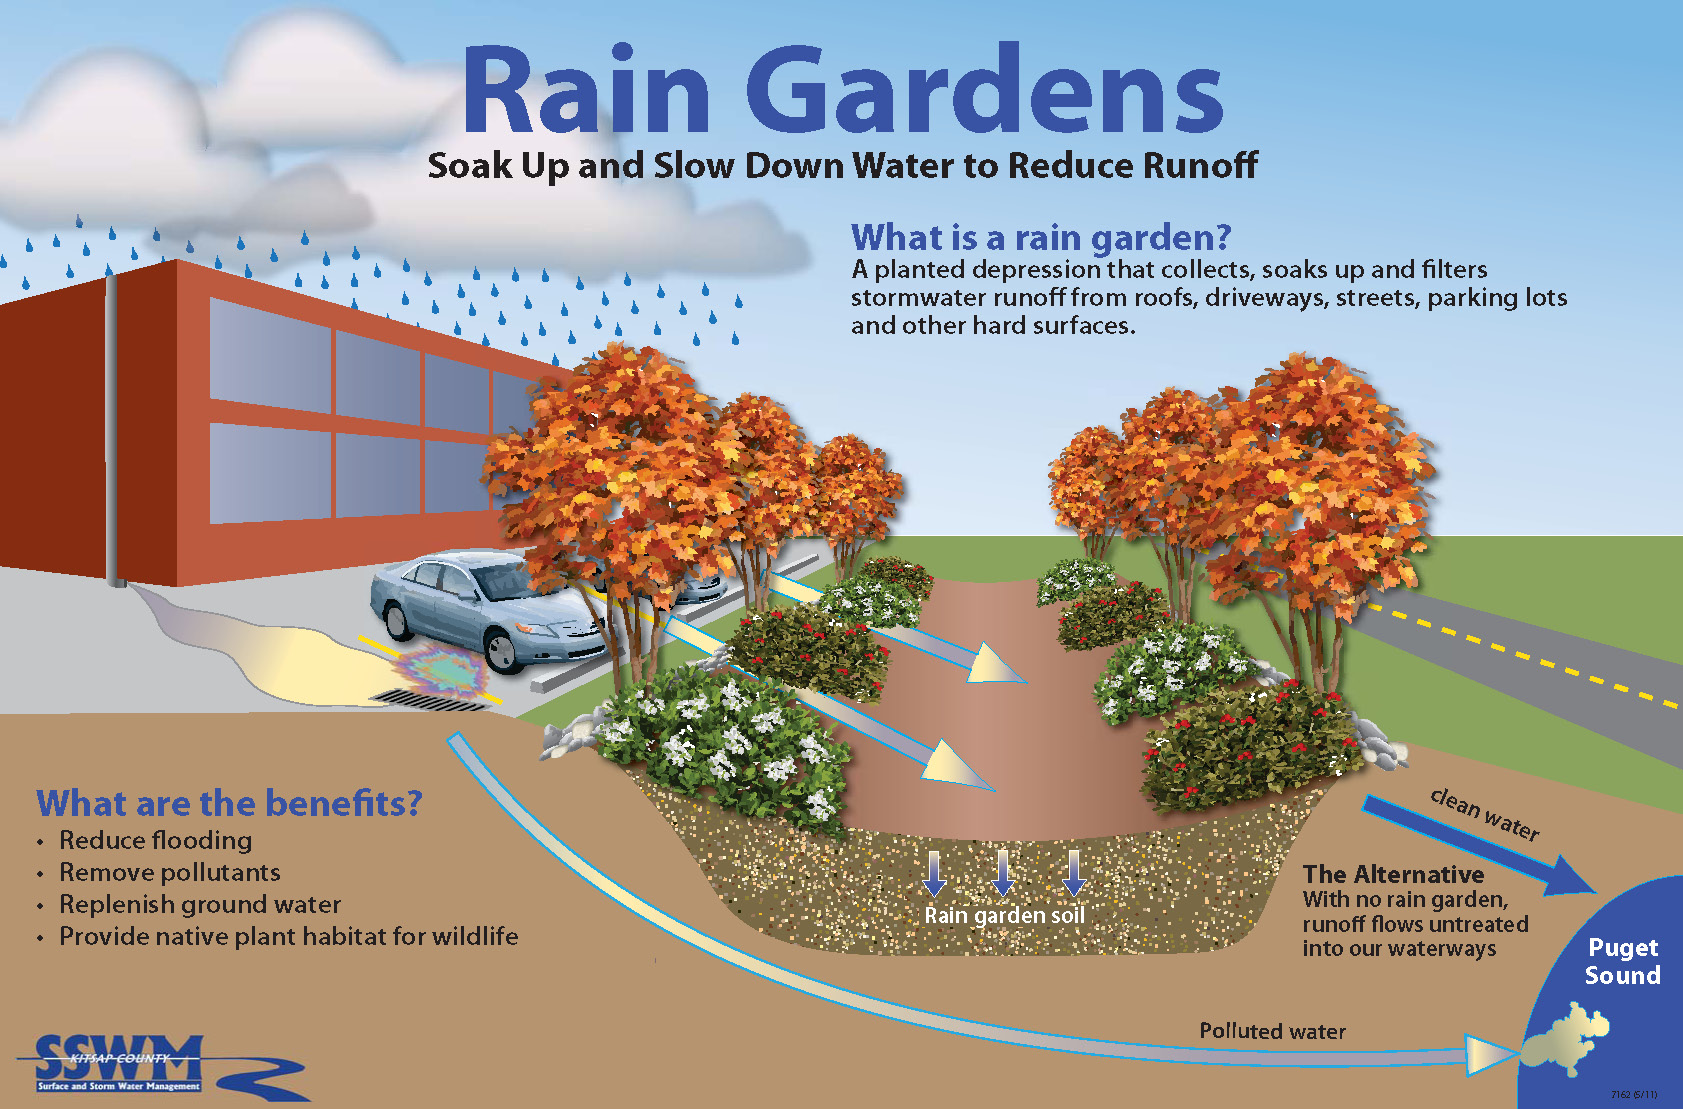 Acknowledgement: Kitsap County Surface and Stormwater Management